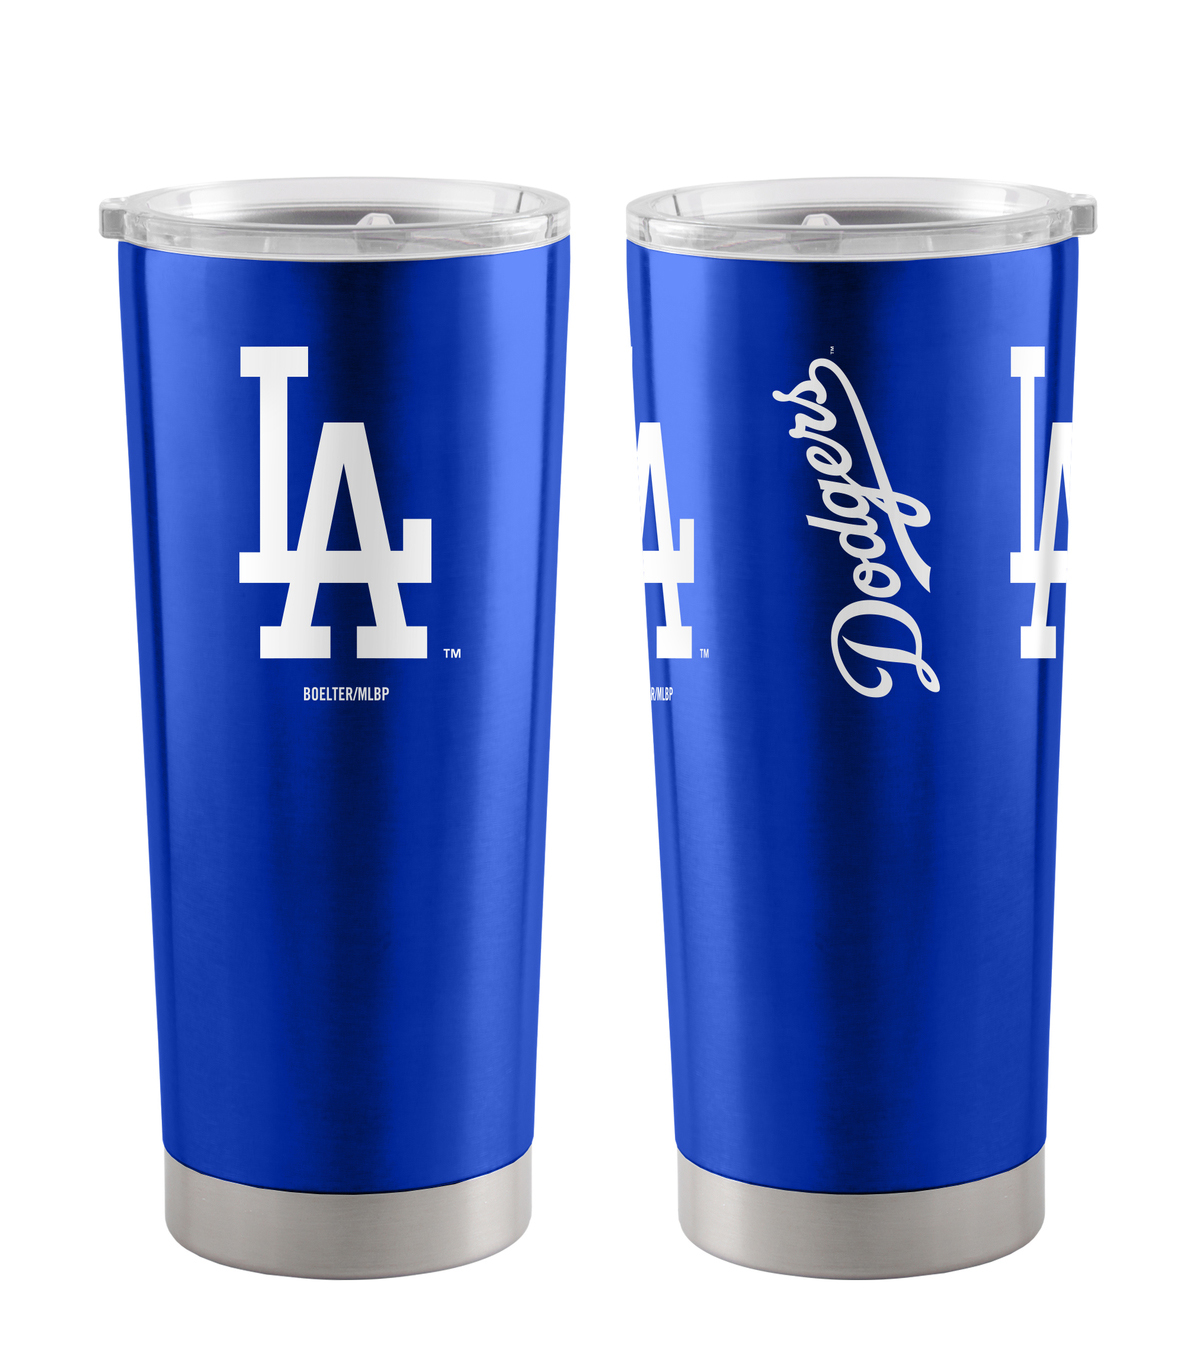 Los Angeles Dodgers 20 oz Insulated Stainless Steel Tumbler